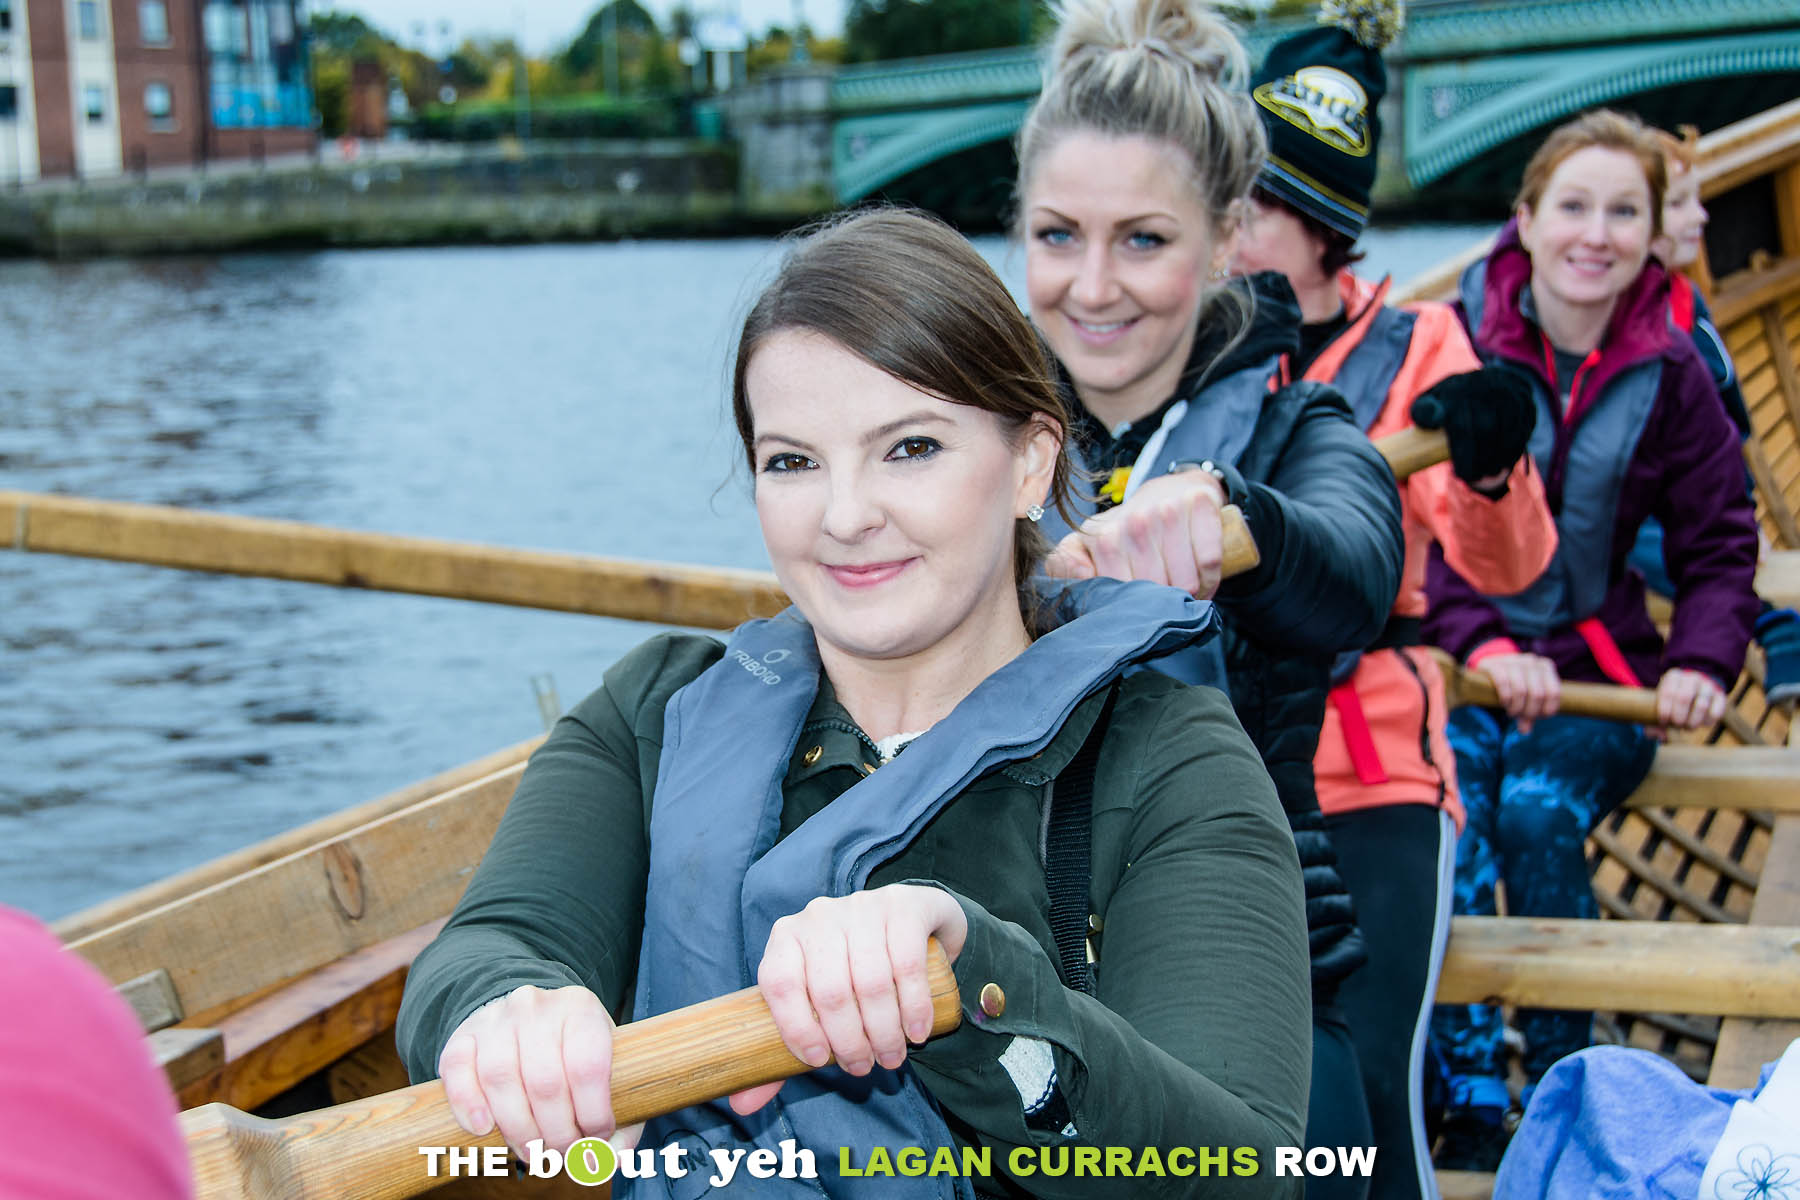 Mairead enjoying the Bout Yeh Lagan Currachs row - photo 9215.